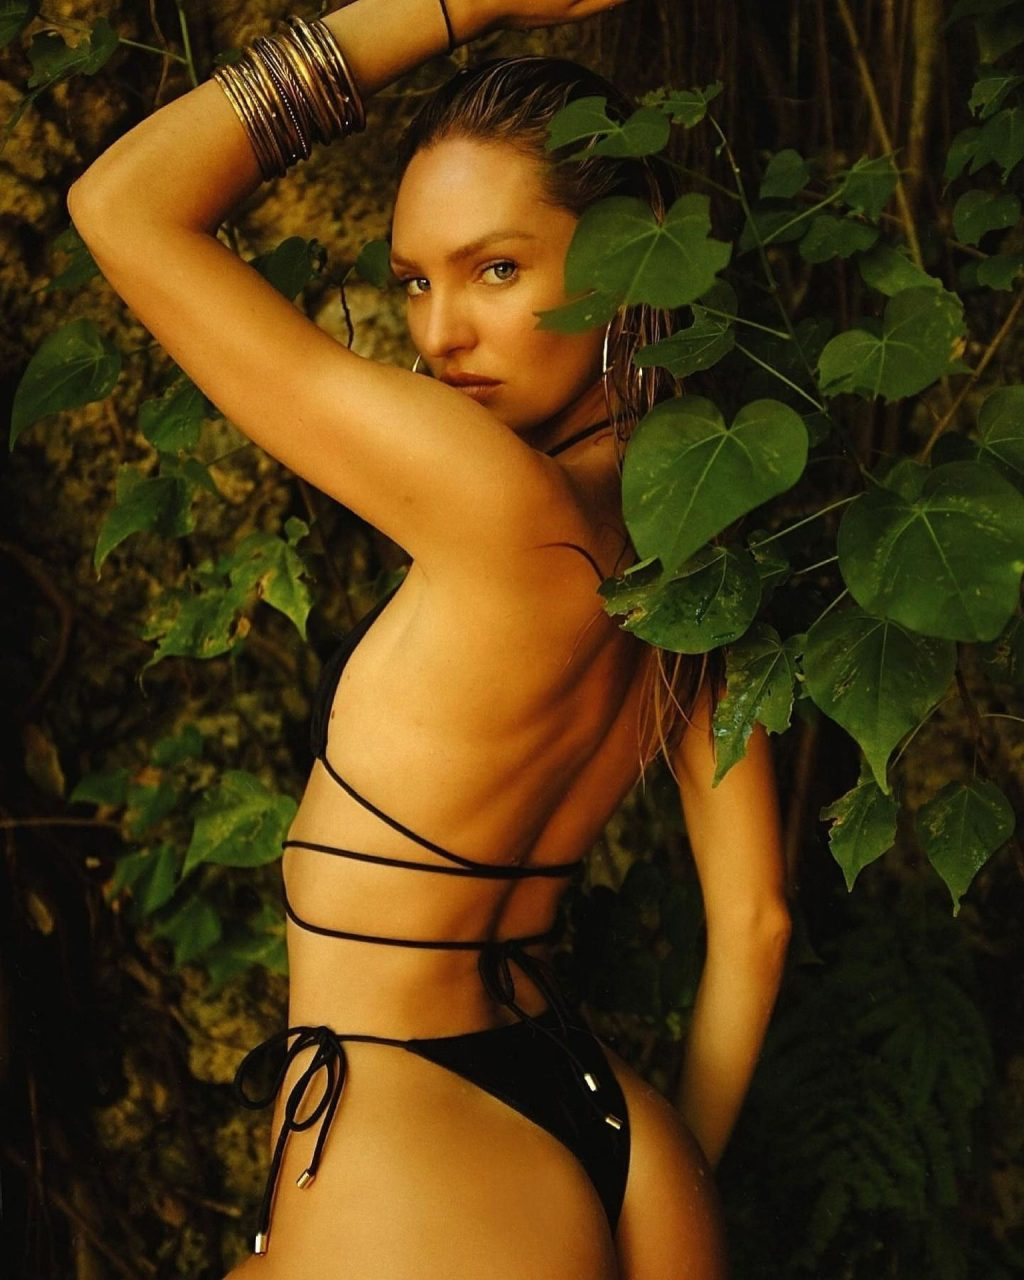 Candice Swanepoel Presents Tropic of C Collection (9 Photos)